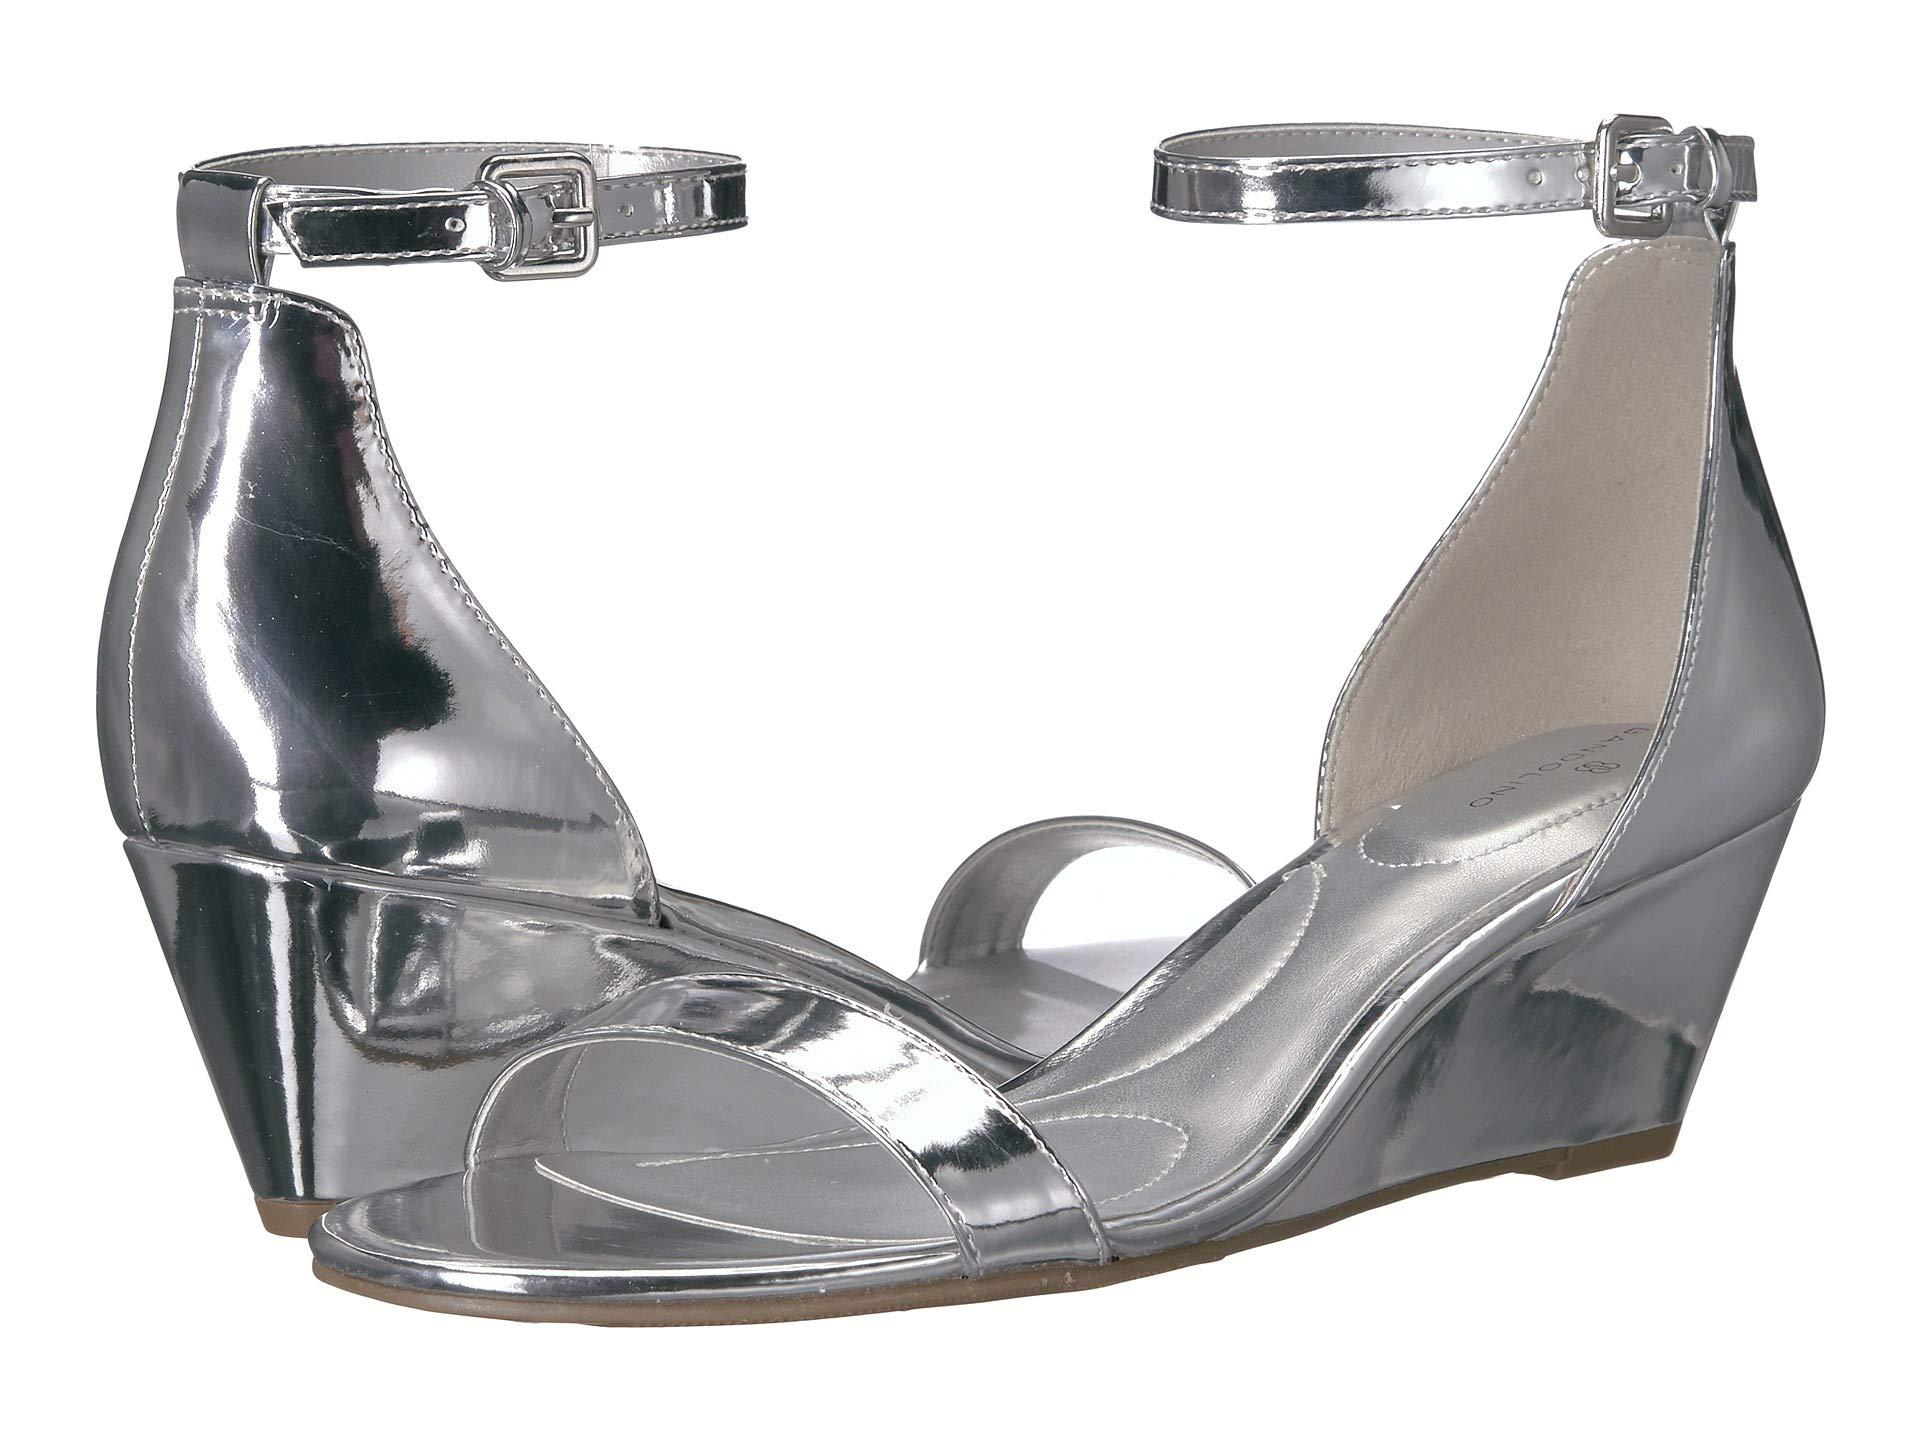 2371beffa0ad Lyst - Bandolino Omira (cork Metallic) Women s Wedge Shoes in Metallic